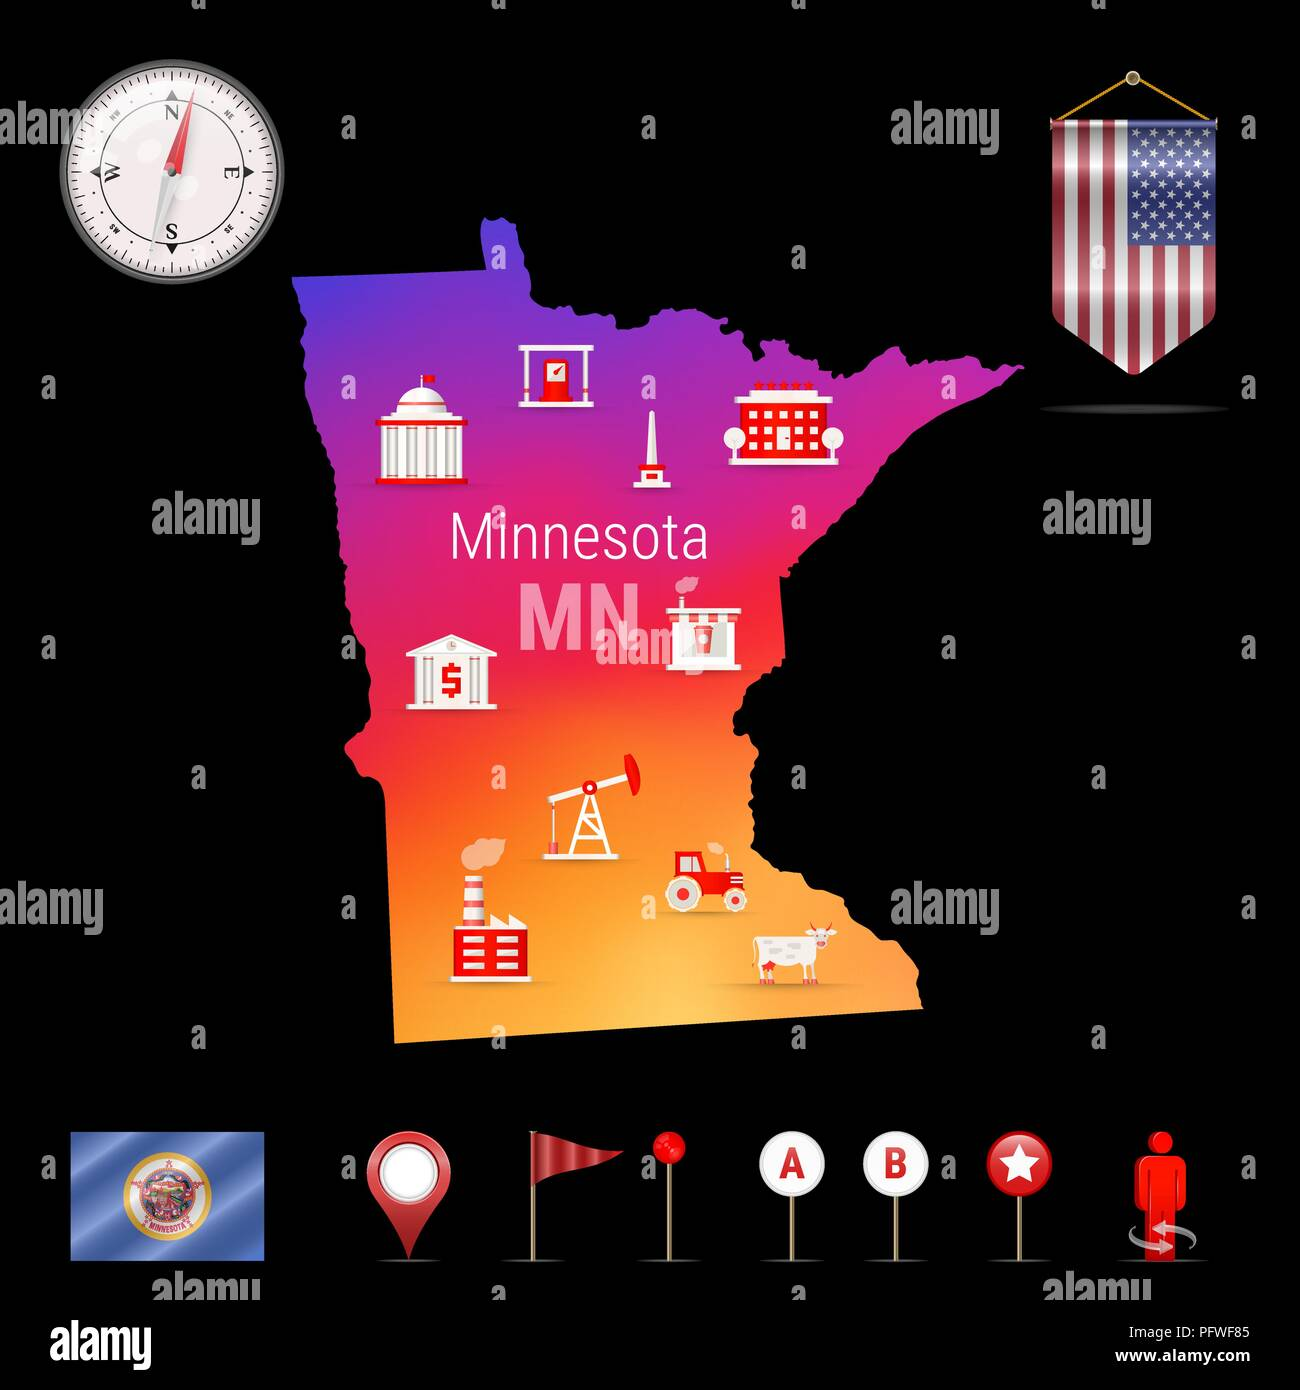 Minnesota Vector Map, Night View. Compass Icon, Map Navigation Elements. Pennant Flag of the United States. Vector Flag of Minnesota. Various Industries, Economic Geography Icons. - Stock Vector